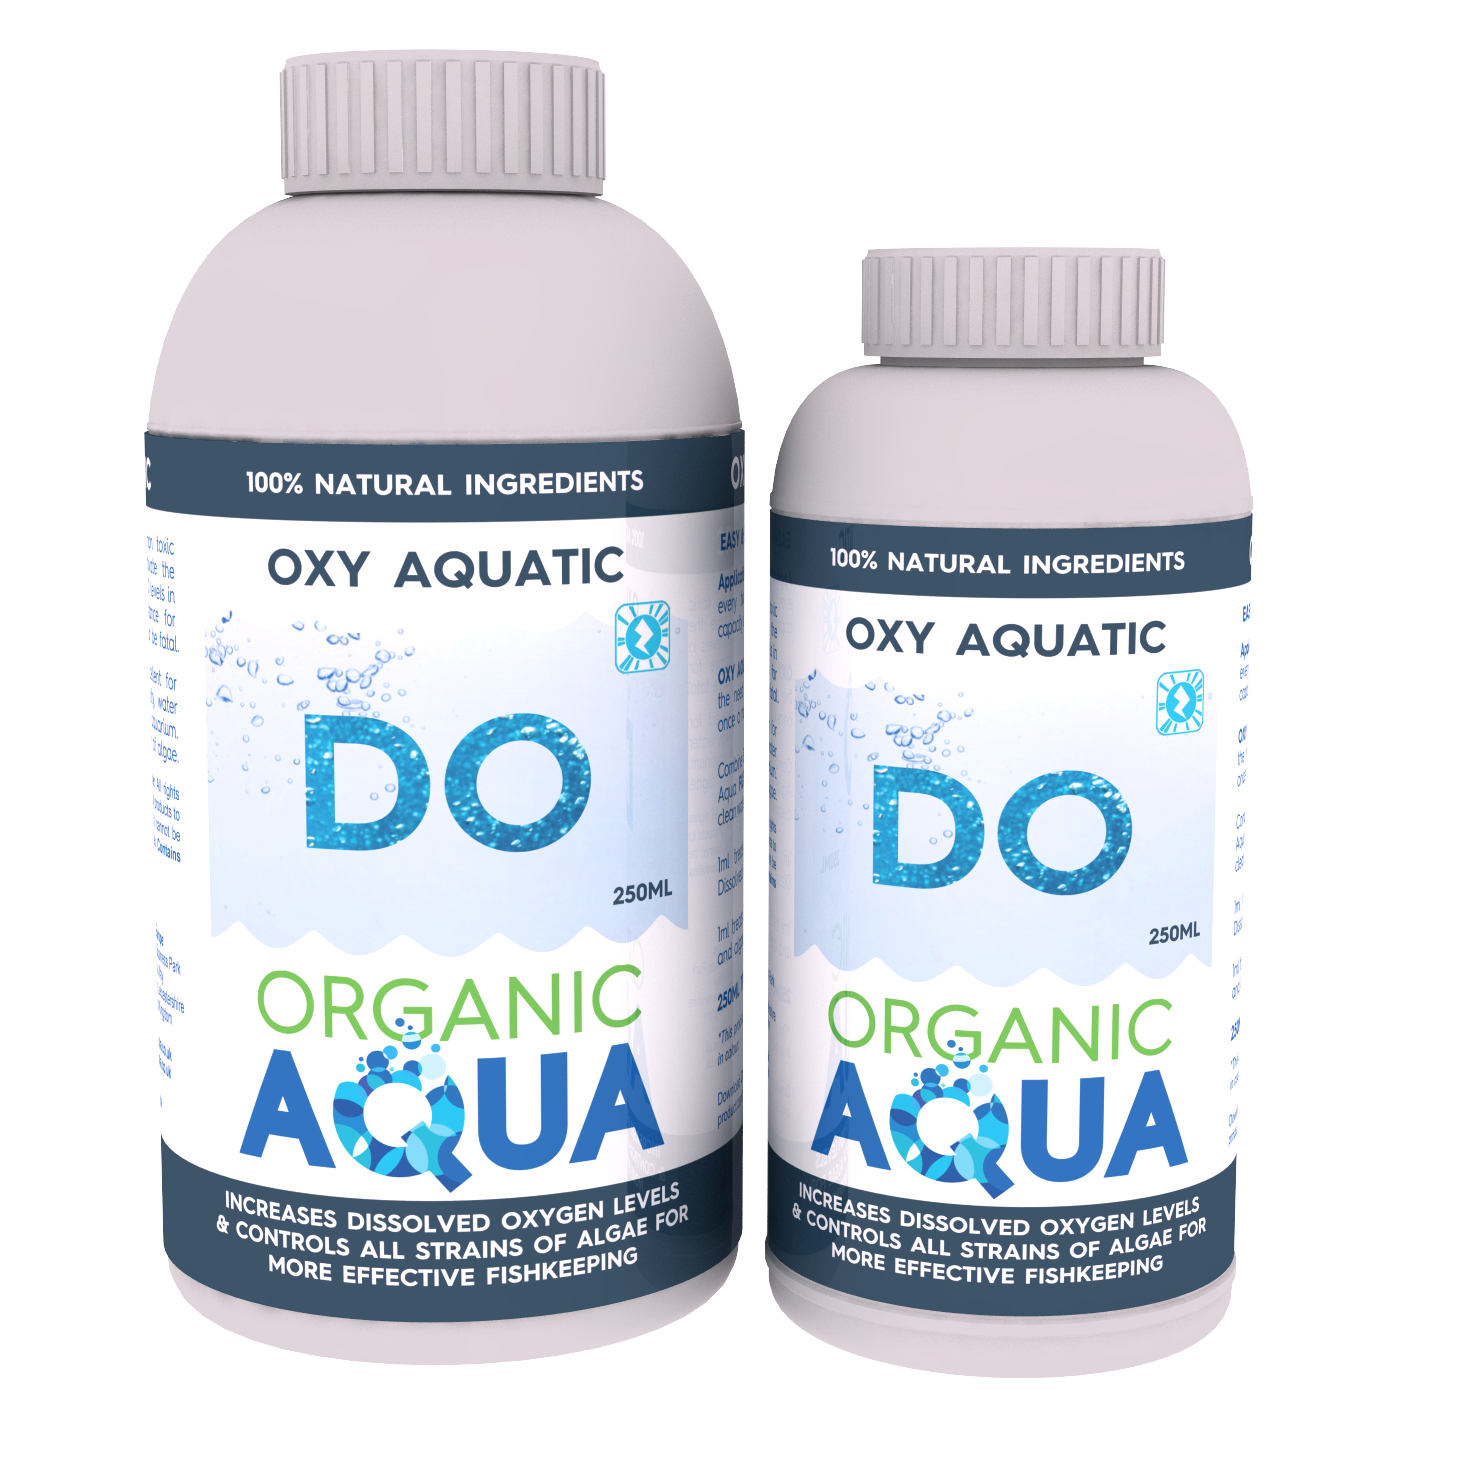 Organic Aqua  OXY AQUATIC 250ml